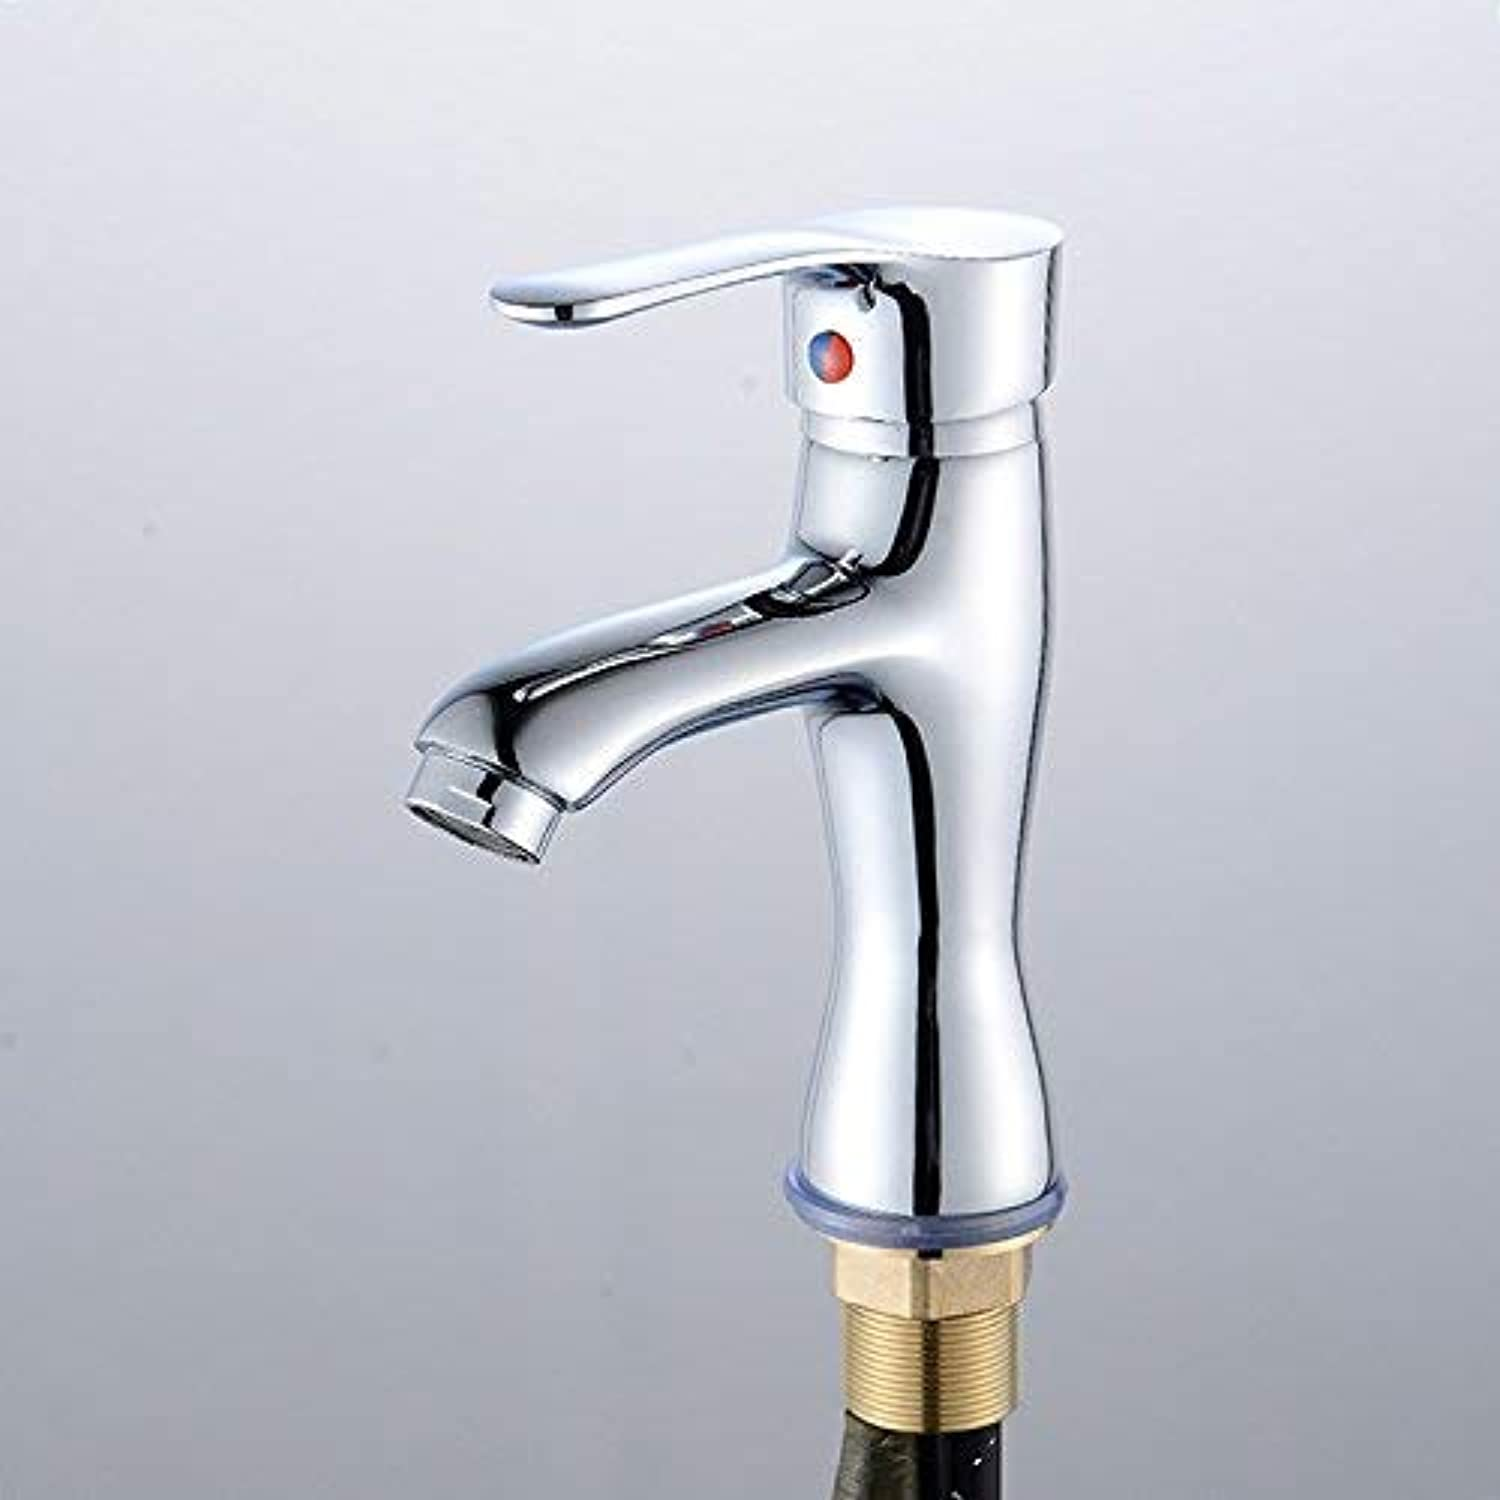 Oudan Basin Mixer Tap Bathroom Sink Faucet The red arrows single hole brass classic bathroom sink hot and cold red stone single hole copper is much better than that from a single tap